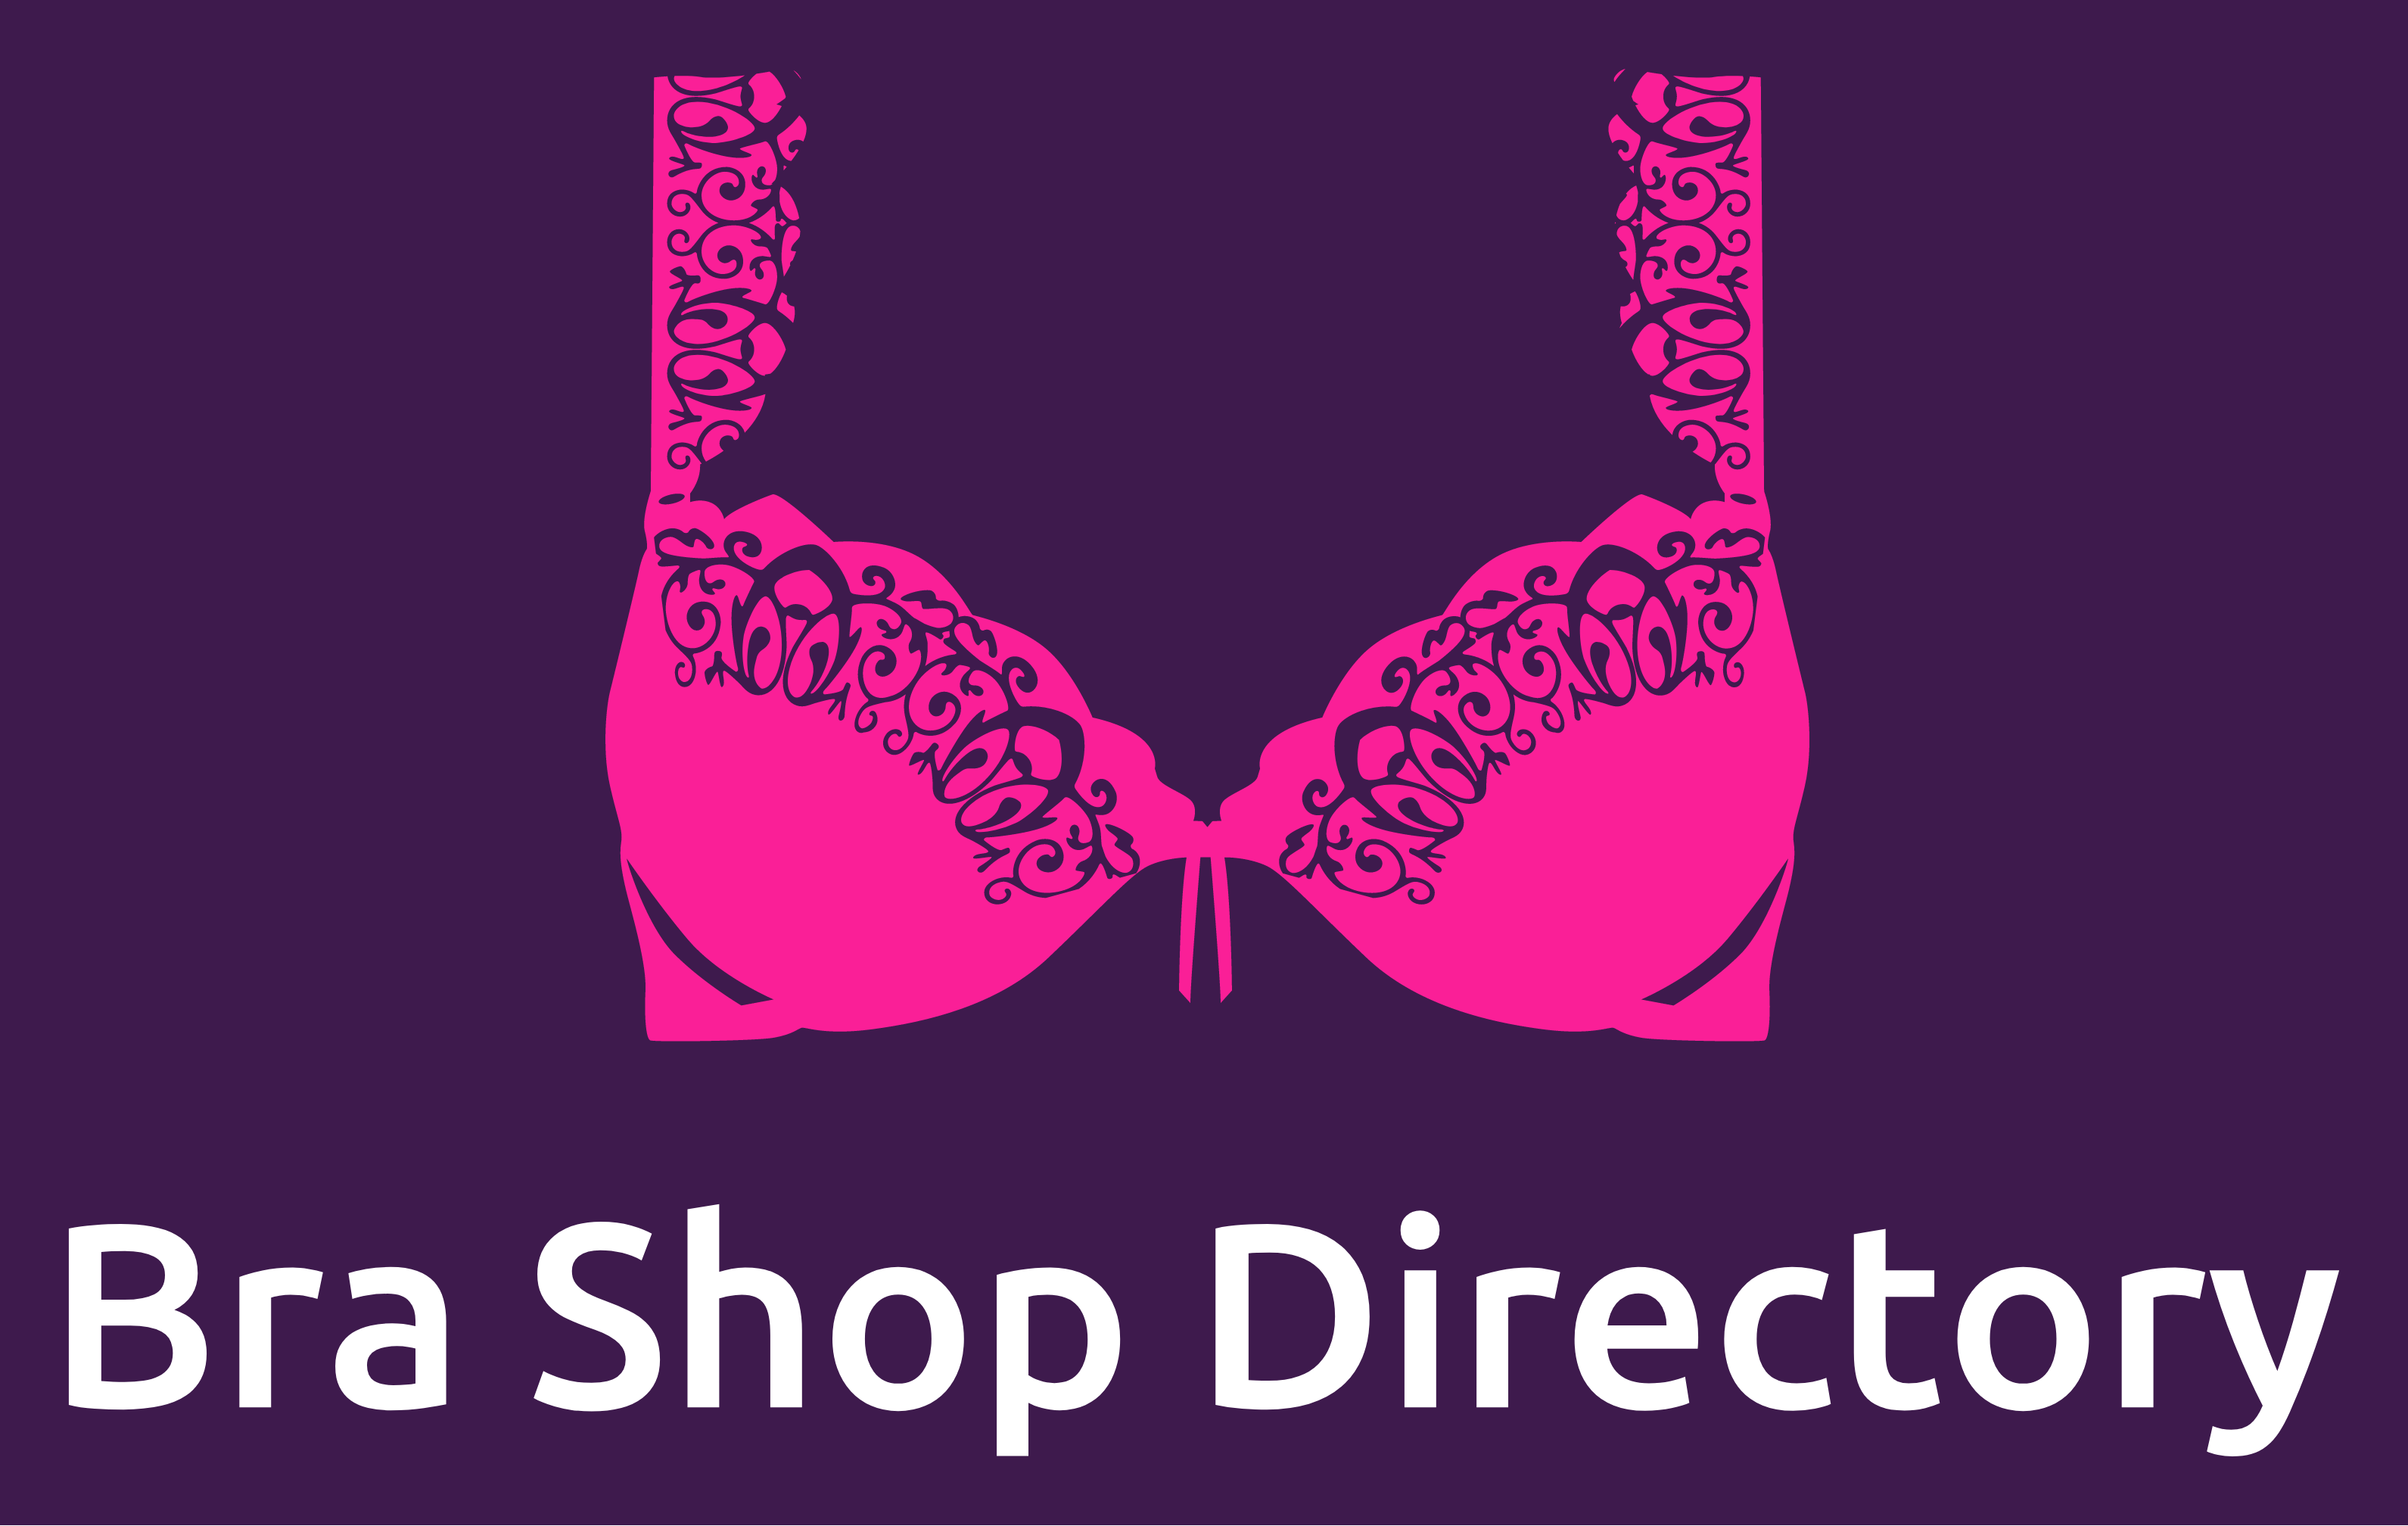 Bra Shop Directory - Pink and Purple logo